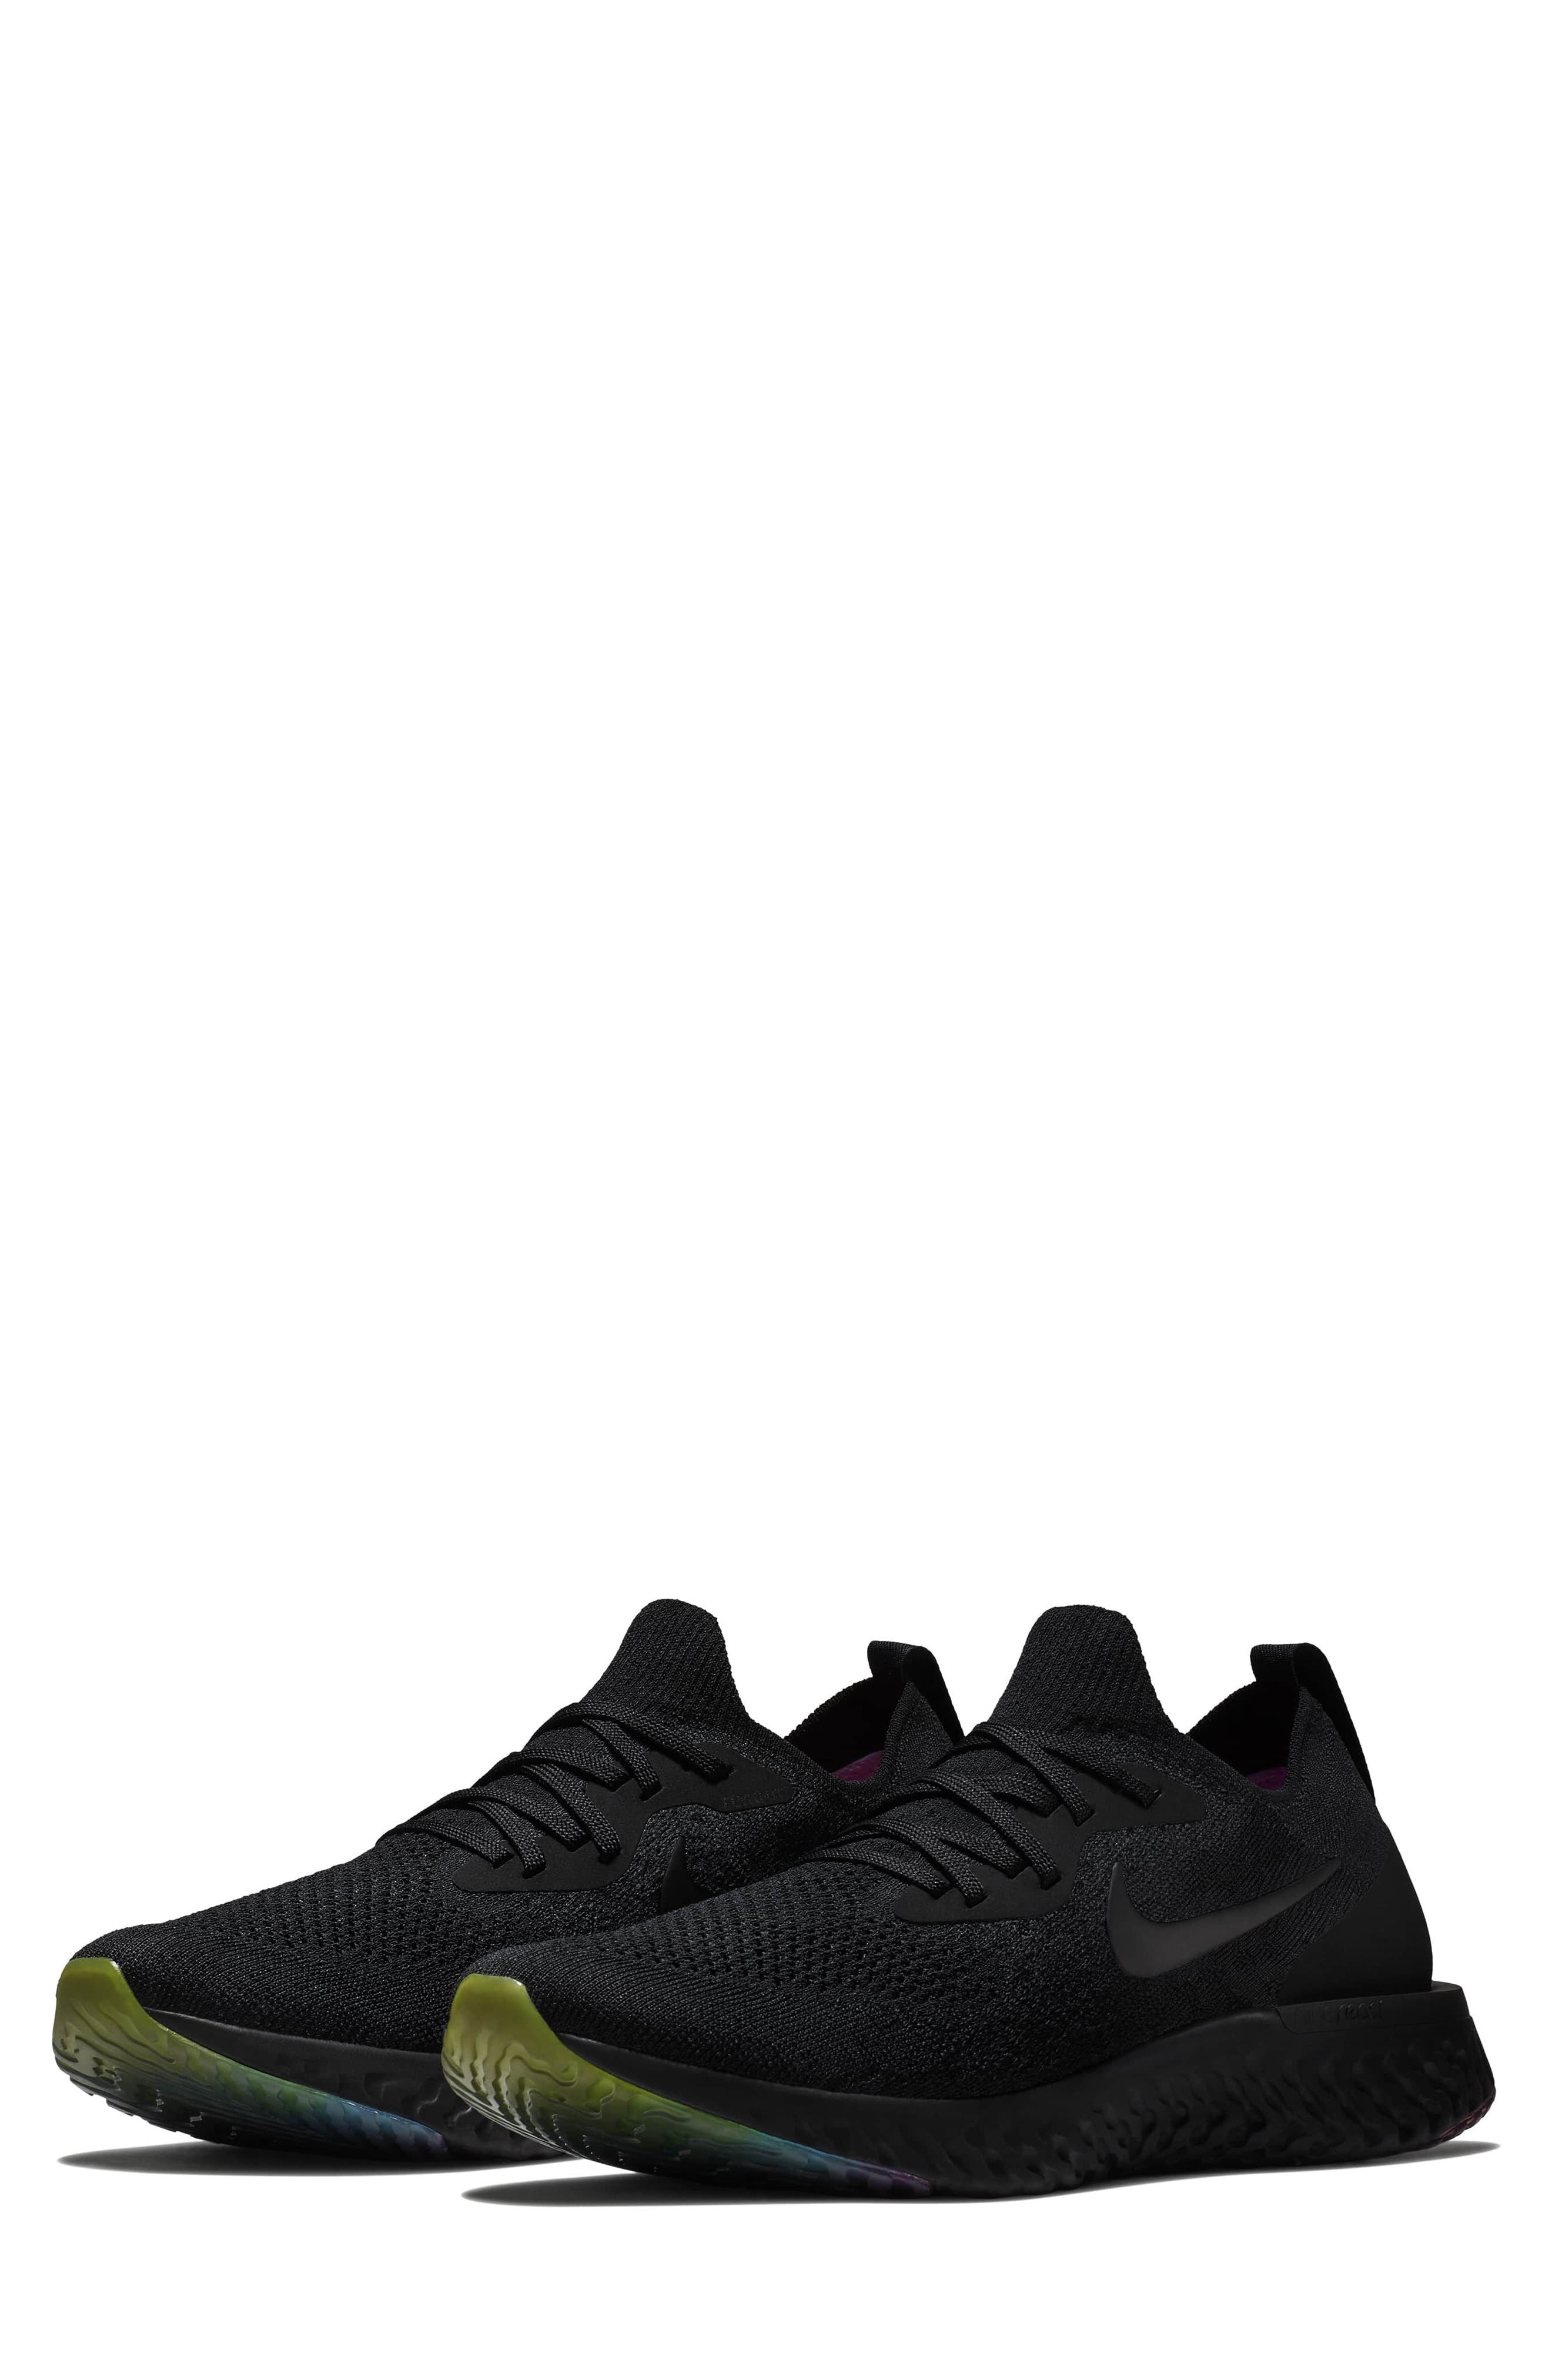 Nordstrom X Nike Epic React Flyknit Betrue Running Shoe by Nike